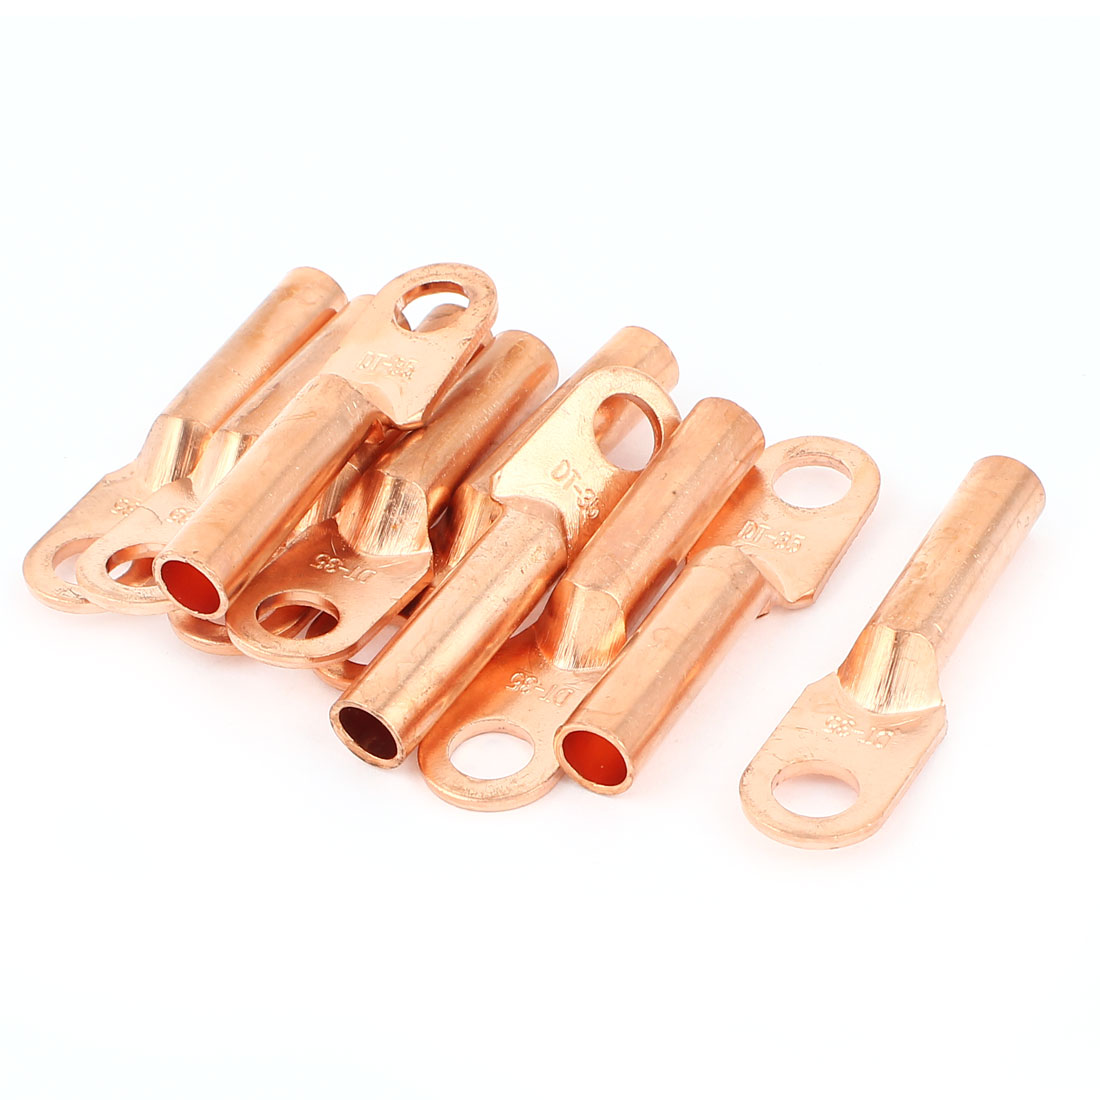 10Pcs Compression Copper Wire Terminal Lug Connectors 11mm Ring for 35mm2 Cable 3/8 Stud